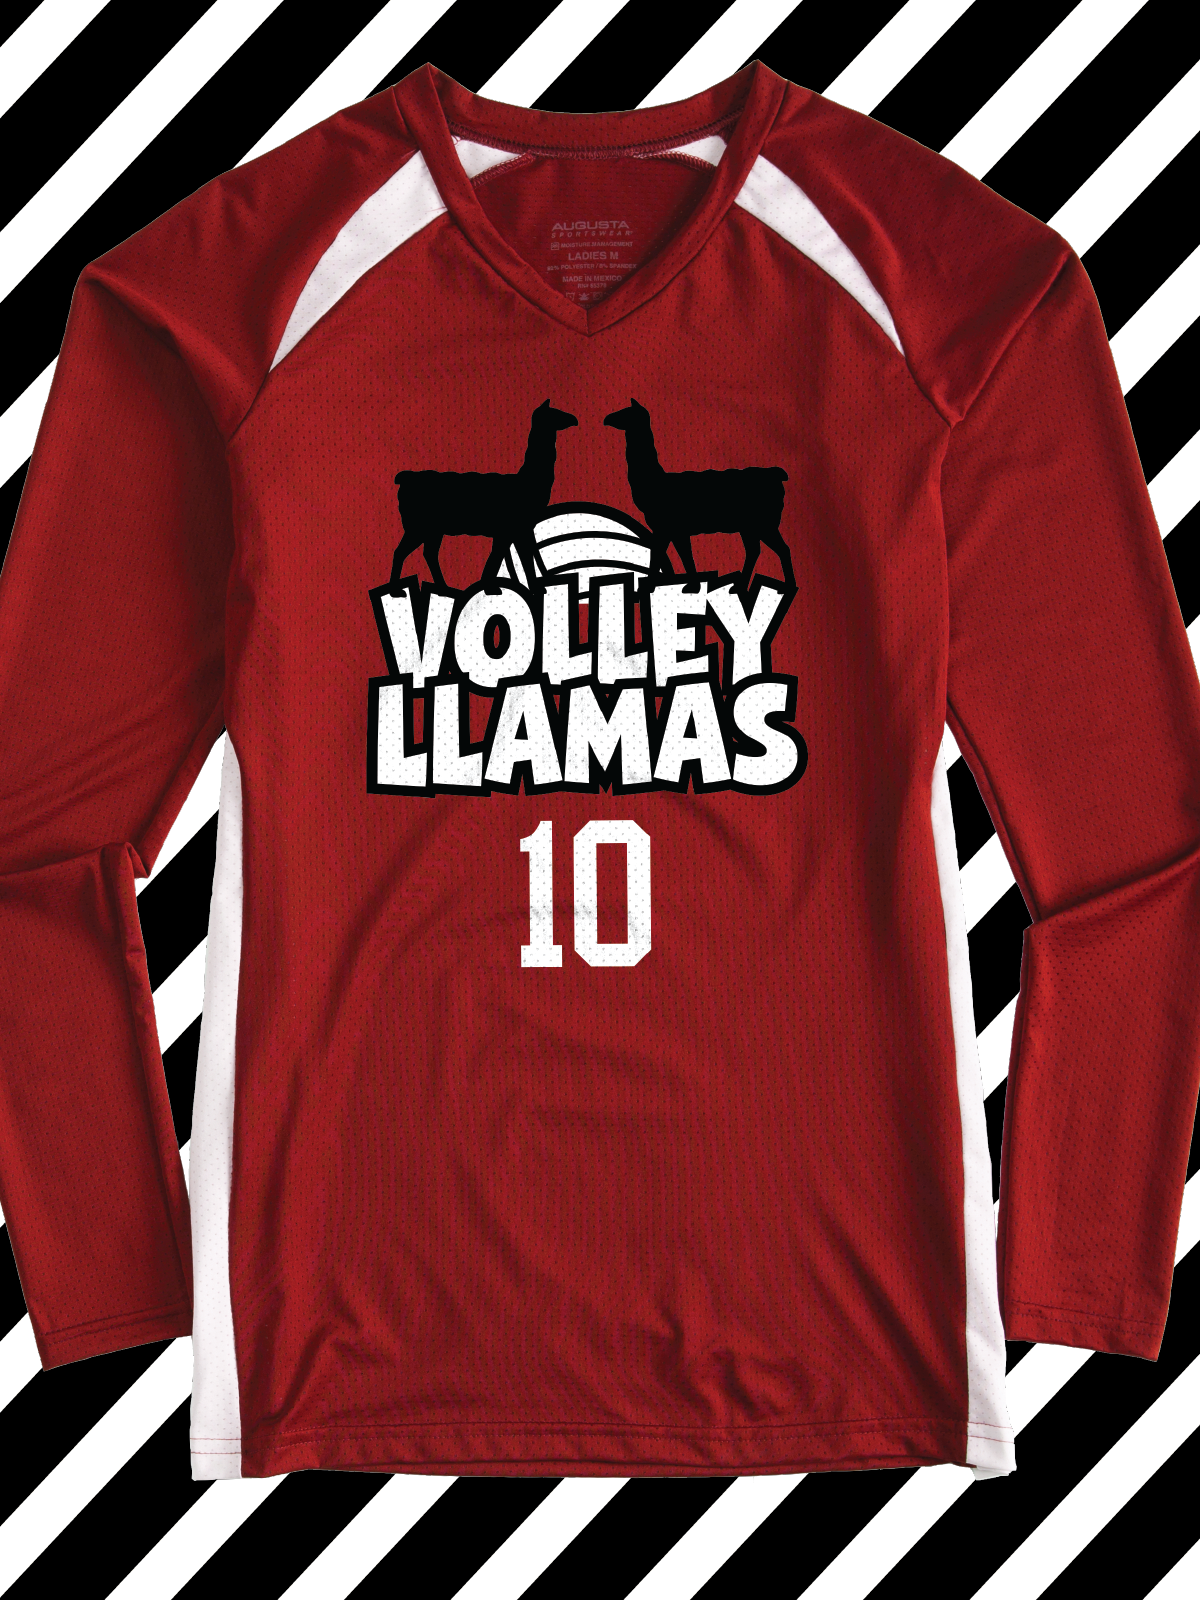 Volley Llamas Funny Design Idea For Custom Volleyball Jerseys Team Shirts League Shirts T Shirts Hoodies Bags Water Team T Shirts Shirt Designs Shirts